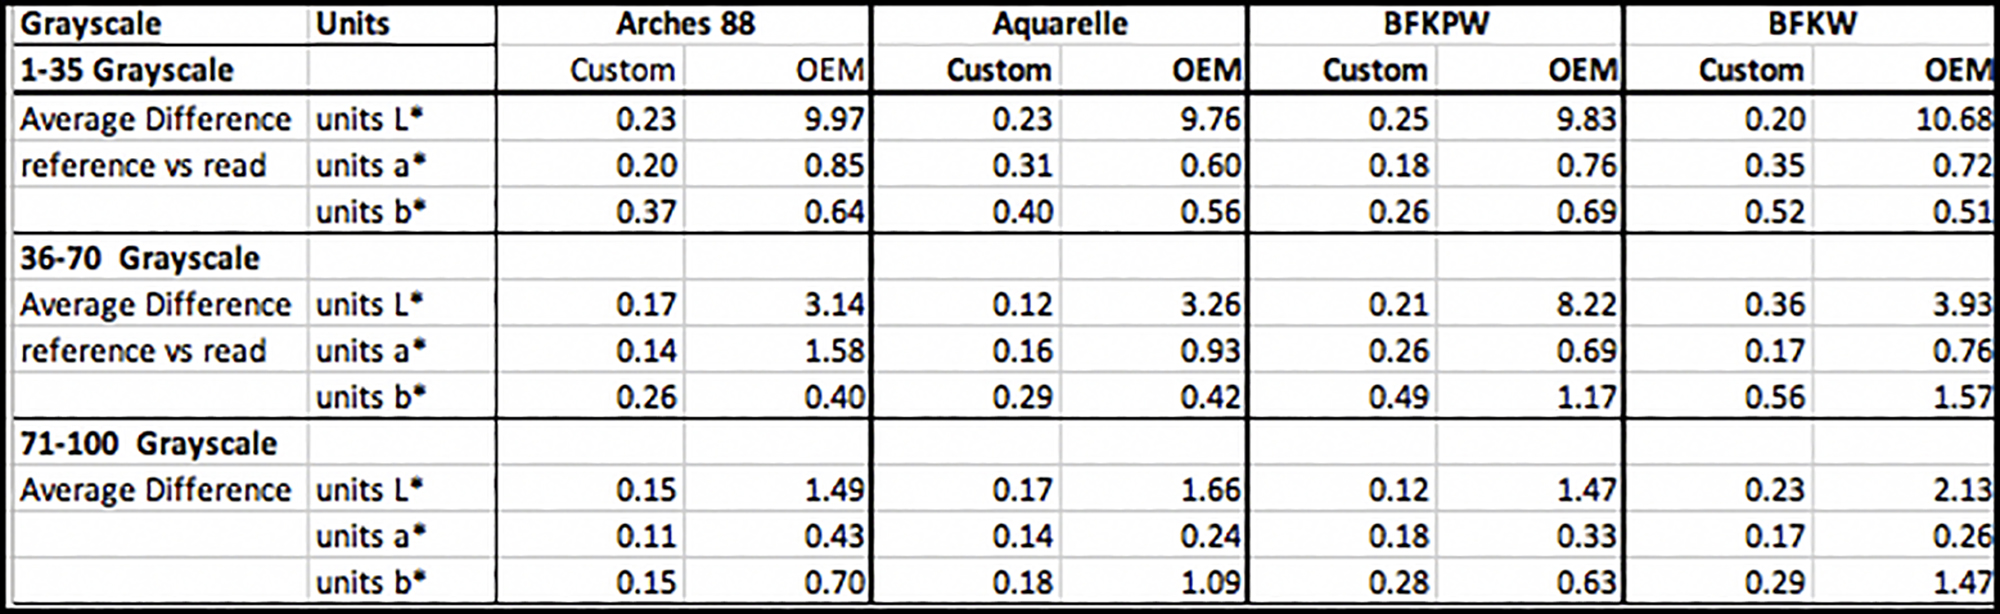 Figure 11. Profiling Outcomes, Grayscale, 43 Patches, OEM and Custom profiles